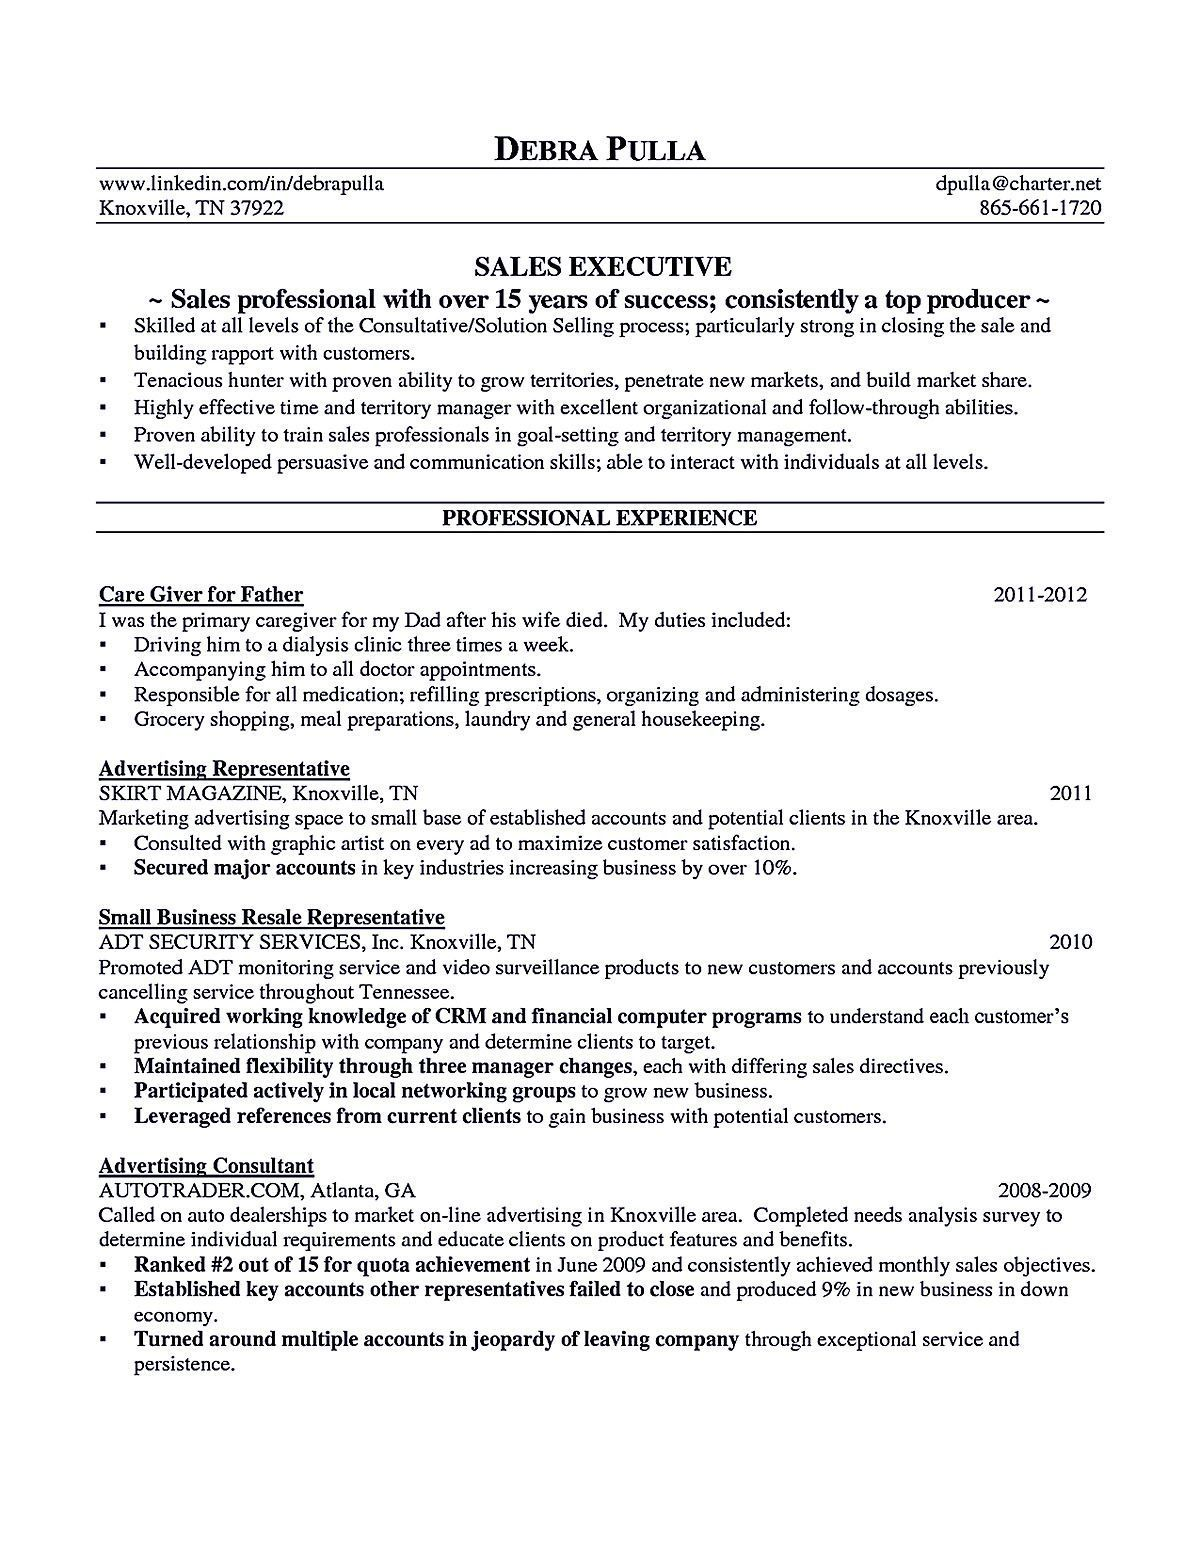 Advertising Account Executive Resume Fascinating Account Executive Resume Is Like Your Weapon To Get The Job You Want .